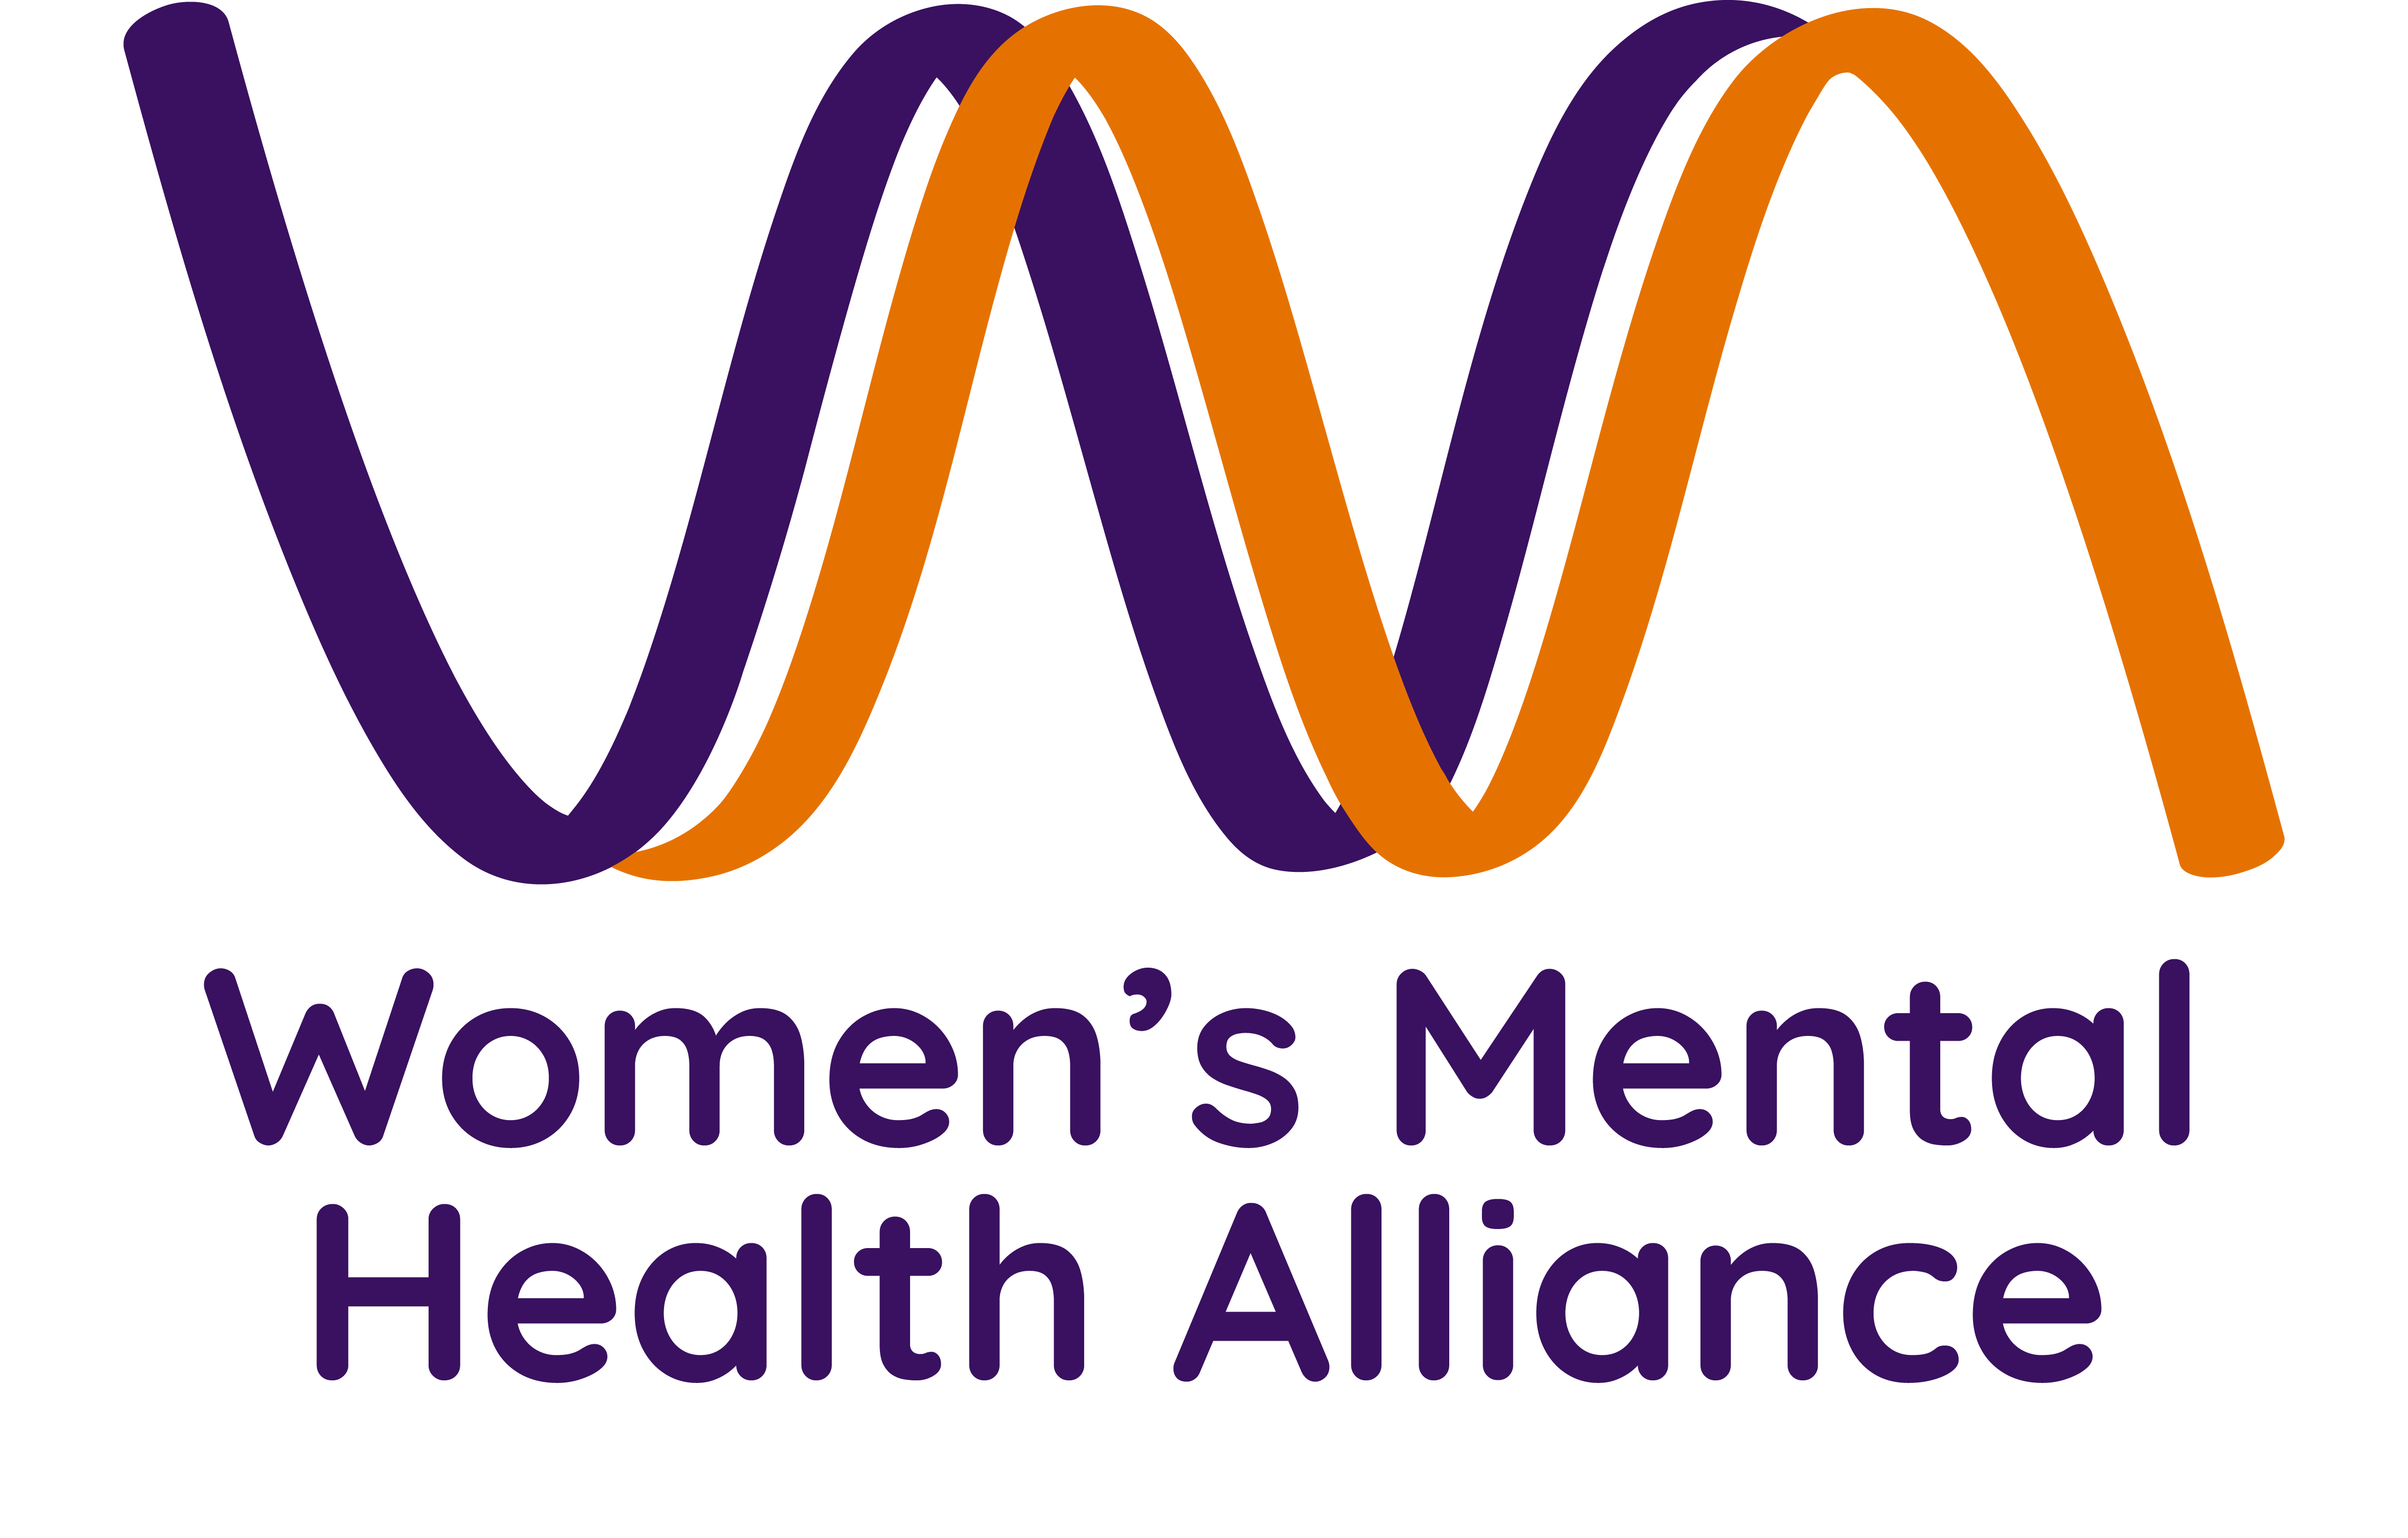 Women's Mental Health Alliance logo features two waves, one purple and one orange, that connect a 'W' and an 'M'